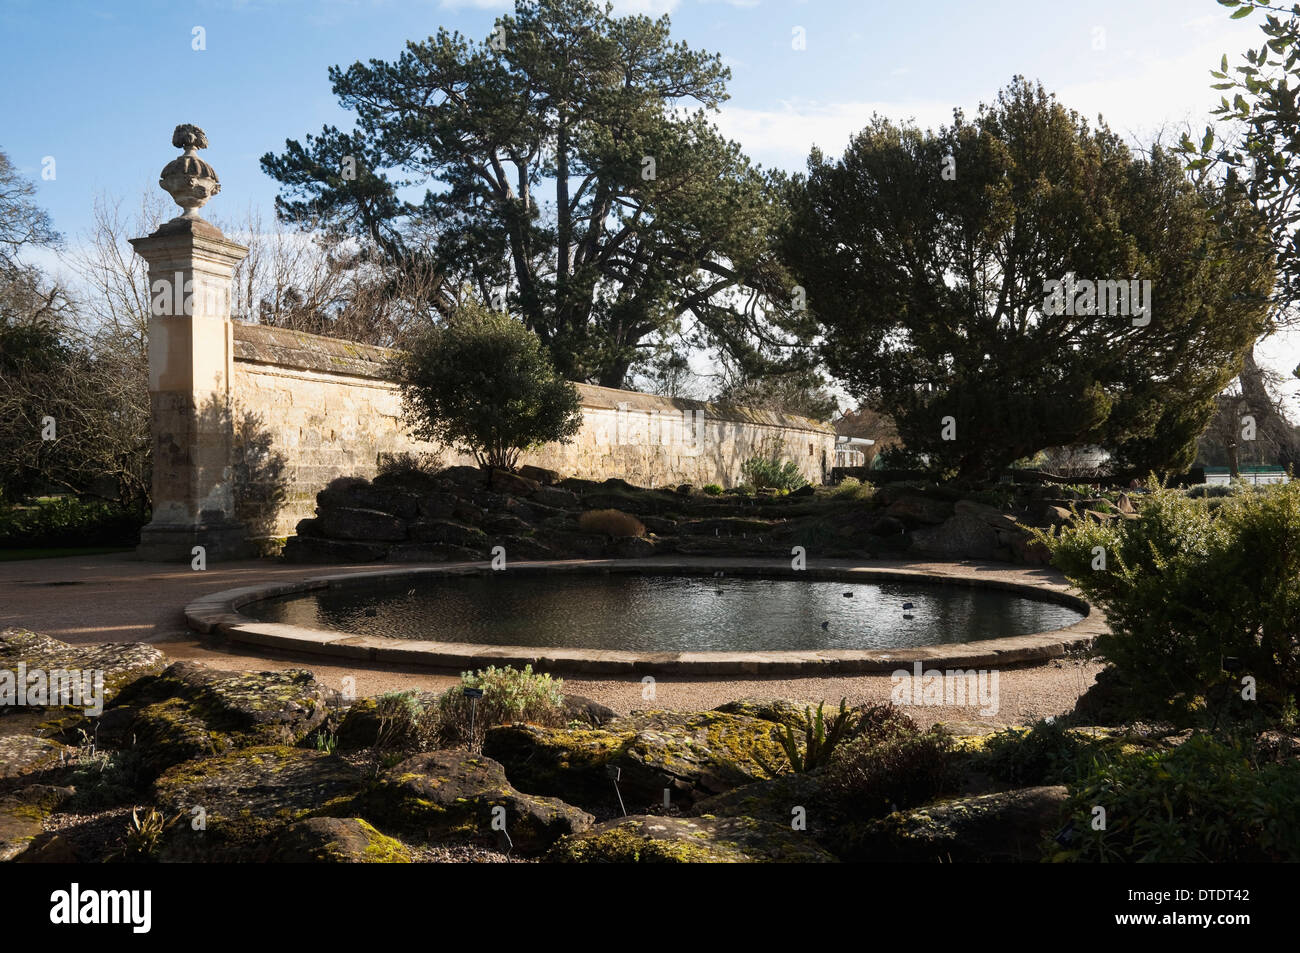 The Oxford Botanic Garden - rock / rockery garden with formal pond and dressed stone wall as backcloth.  UK. - Stock Image